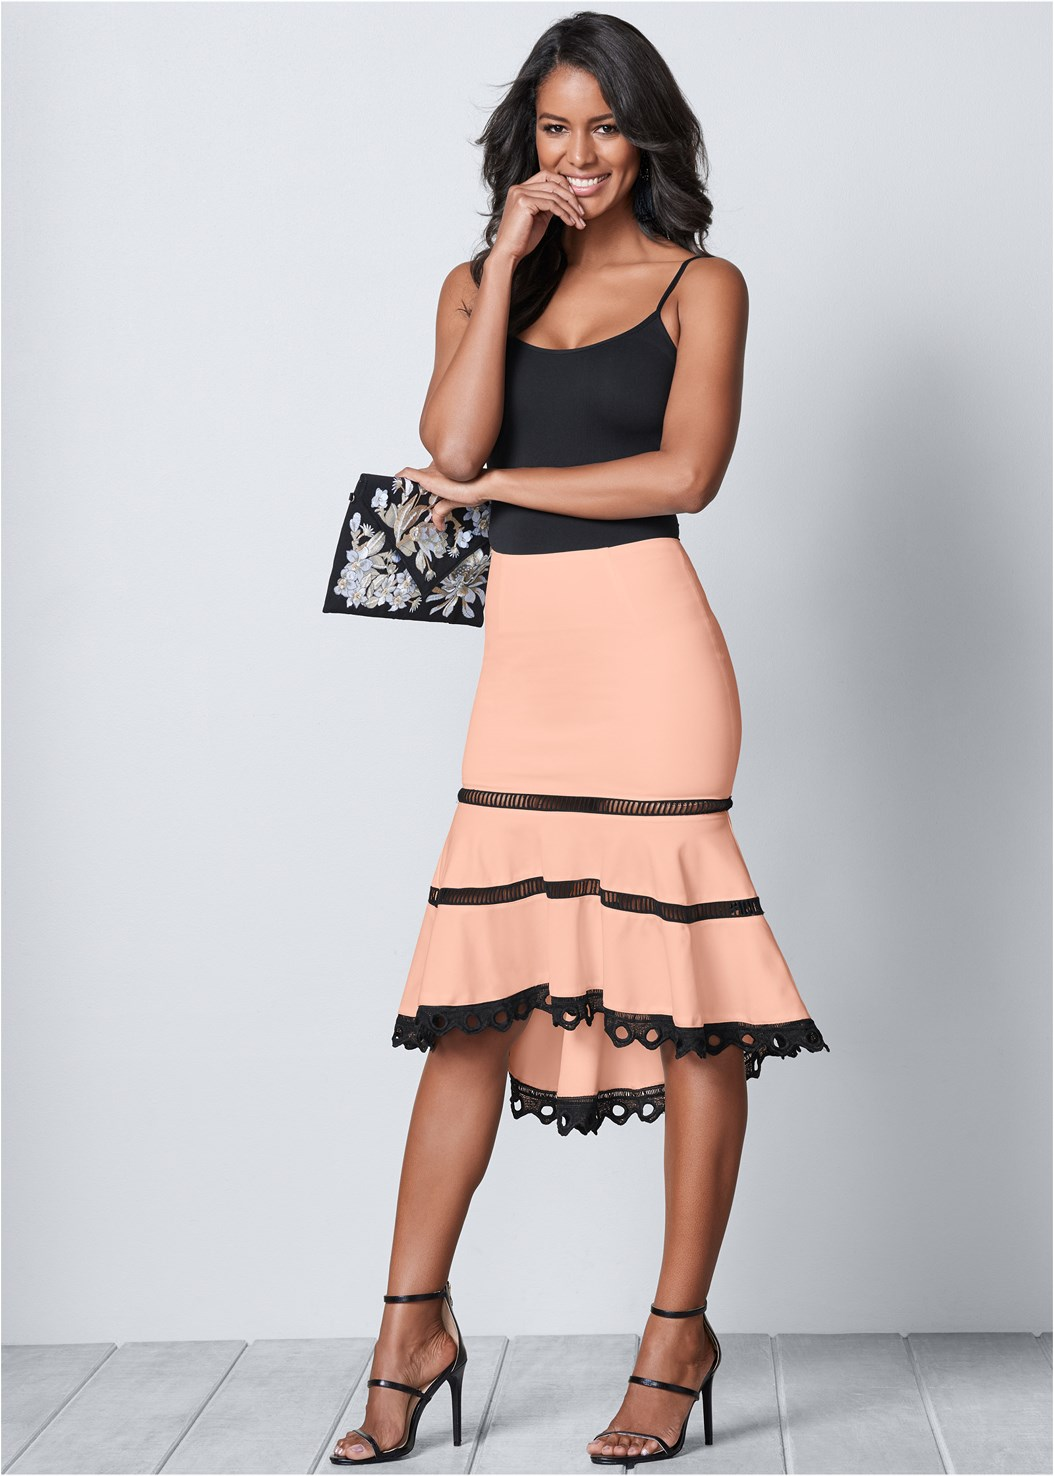 High Low Midi Skirt,Basic Cami Two Pack,High Heel Strappy Sandals,Tassel Earrings